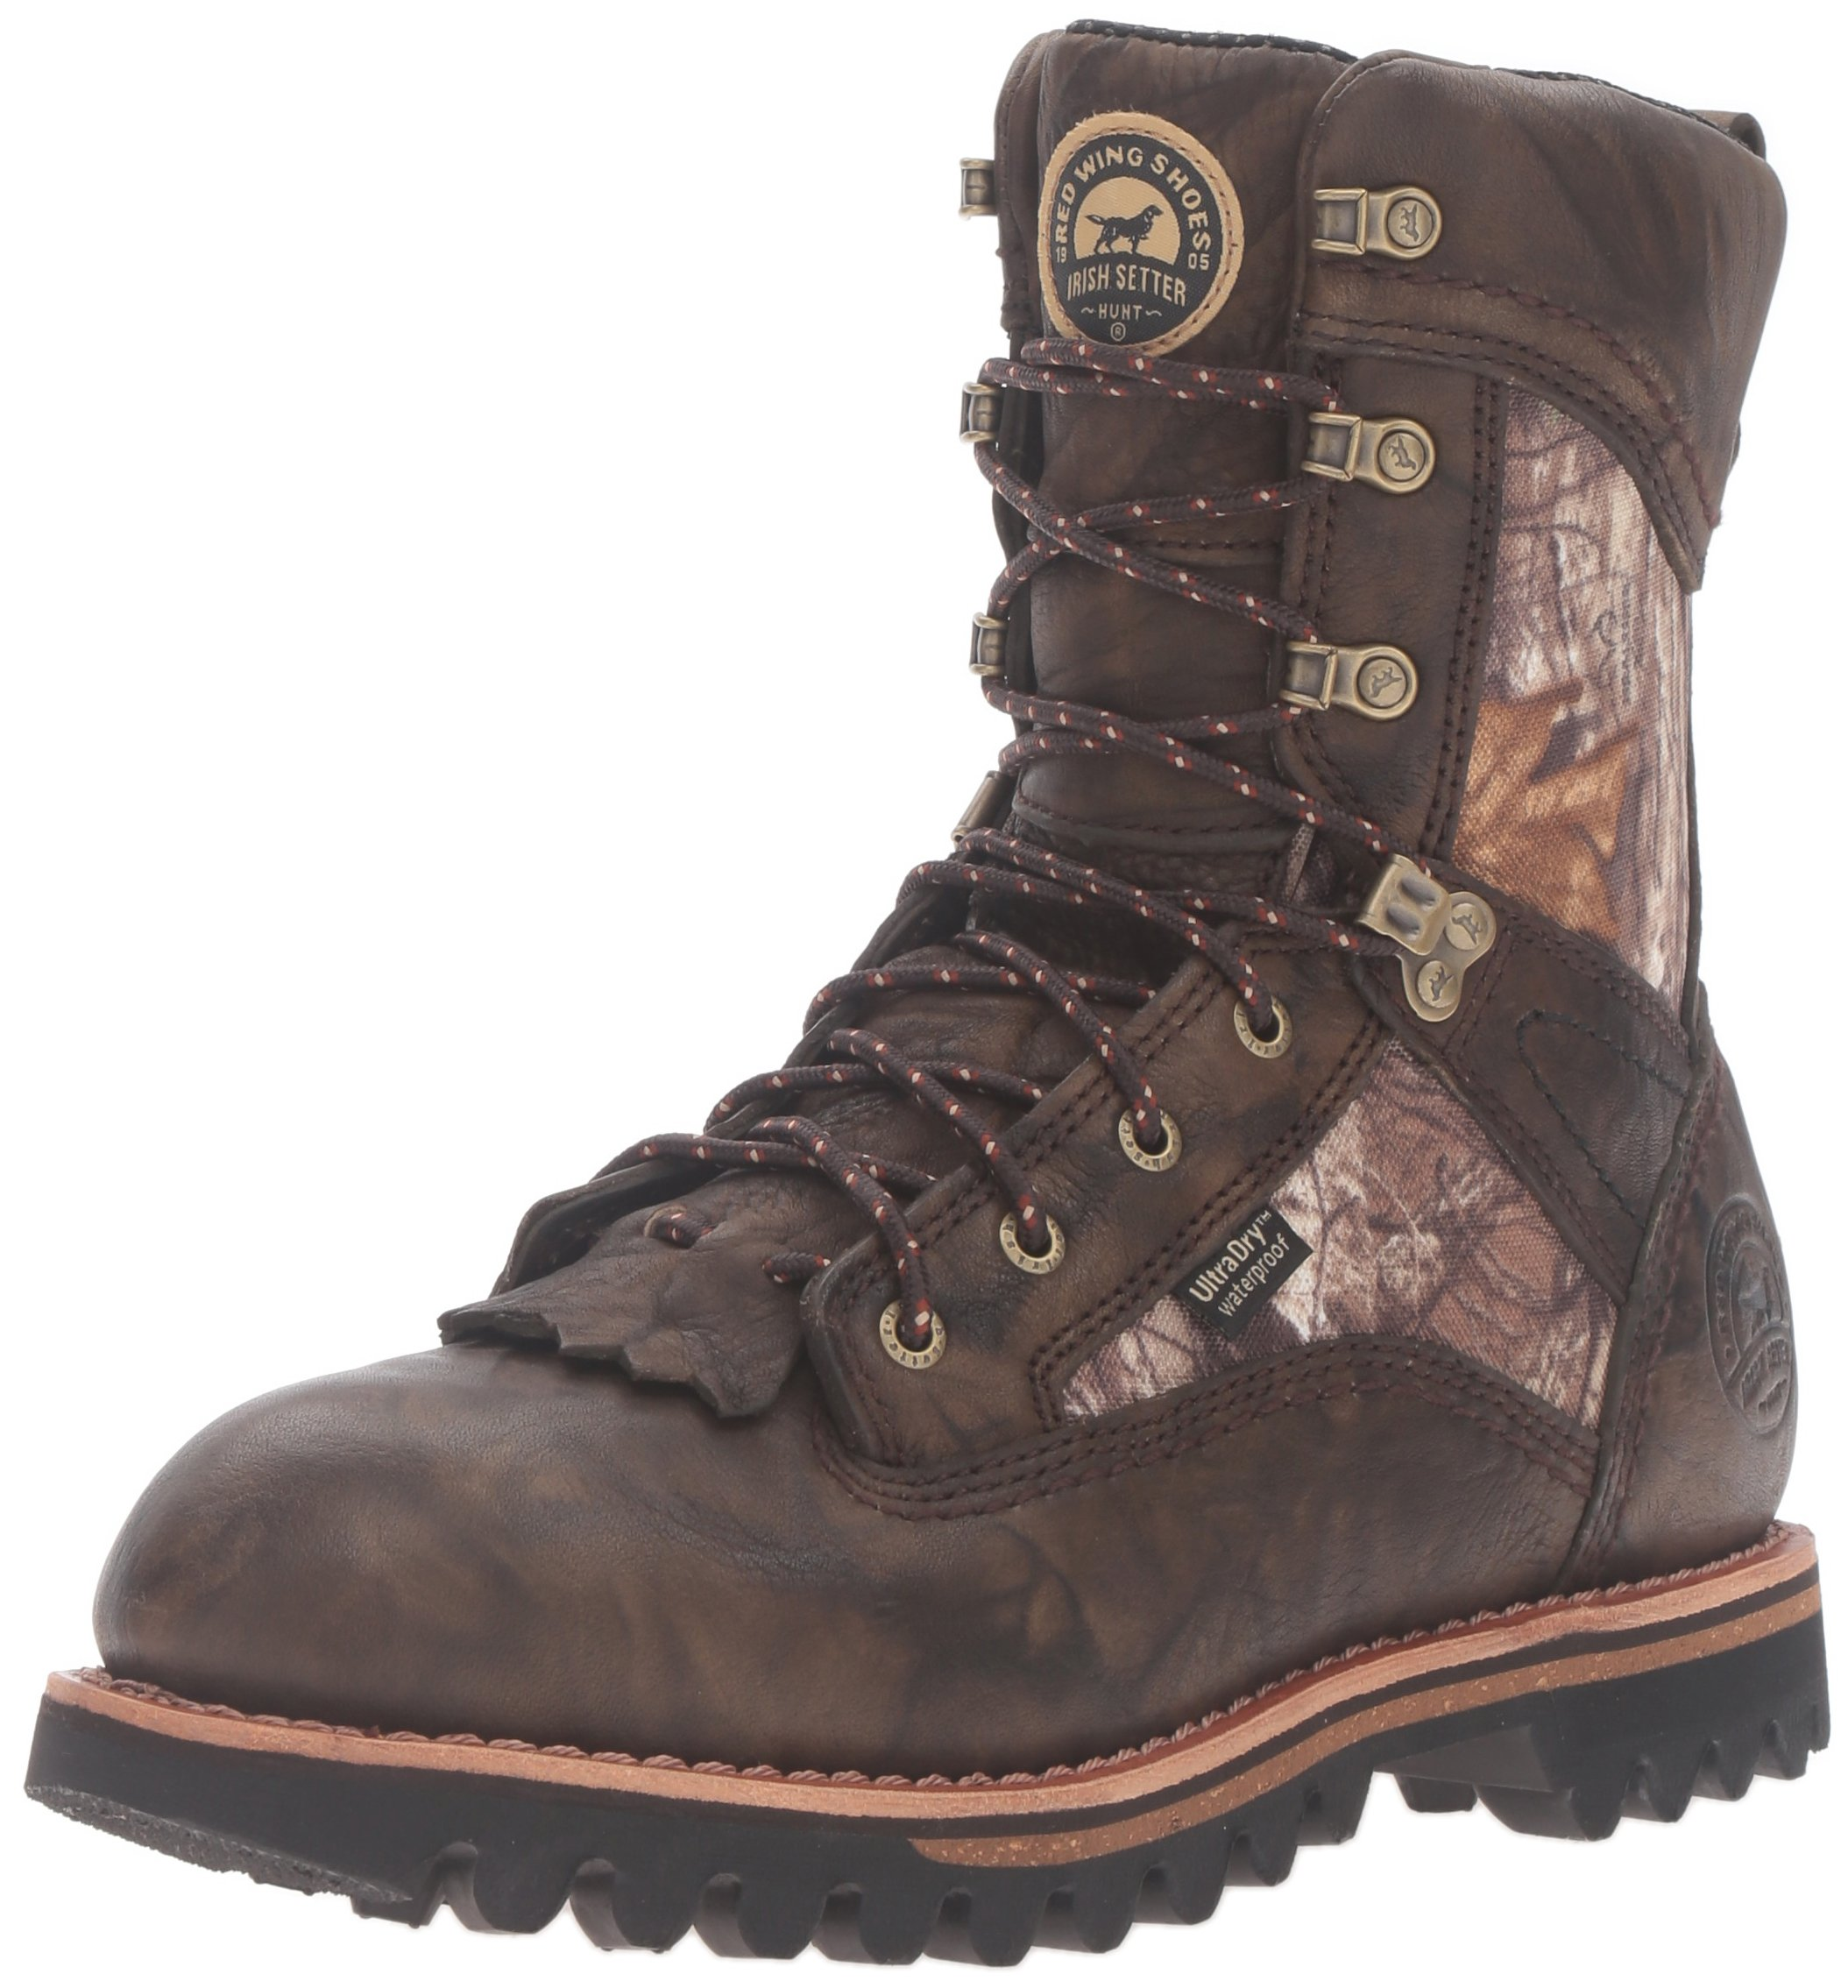 Irish Setter Men's Elk Tracker 885 400 Gram Hunting Boot, Realtree Xtra, 10.5 D US